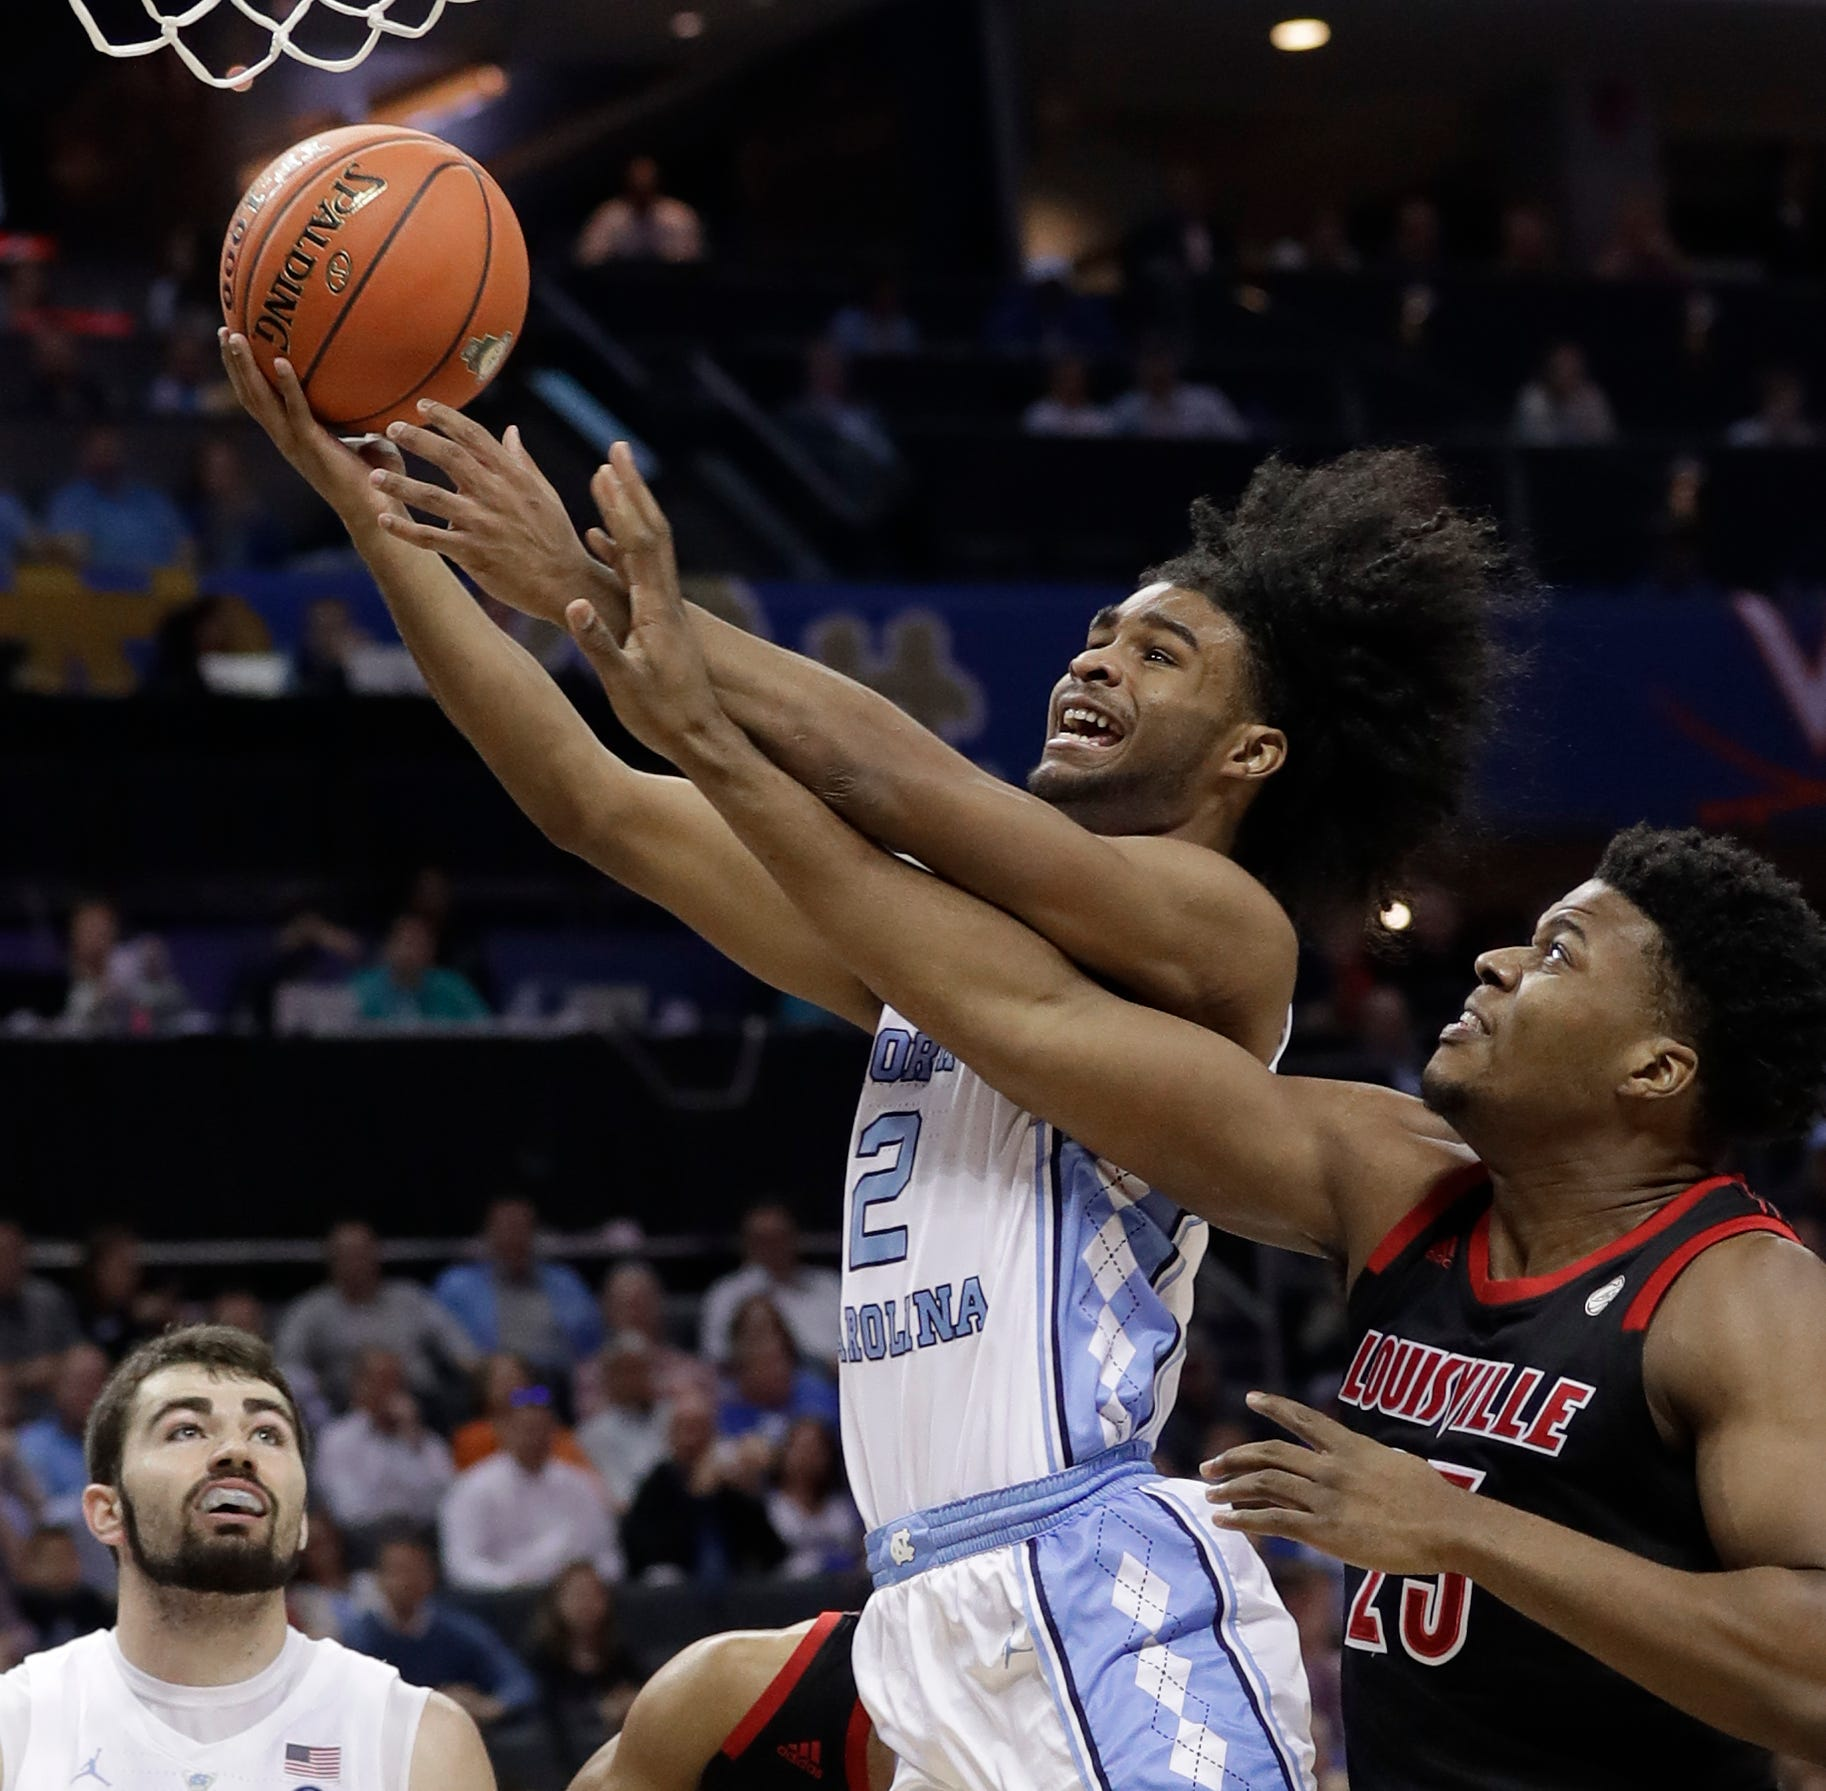 North Carolina's speed leaves Louisville basketball looking flat-footed